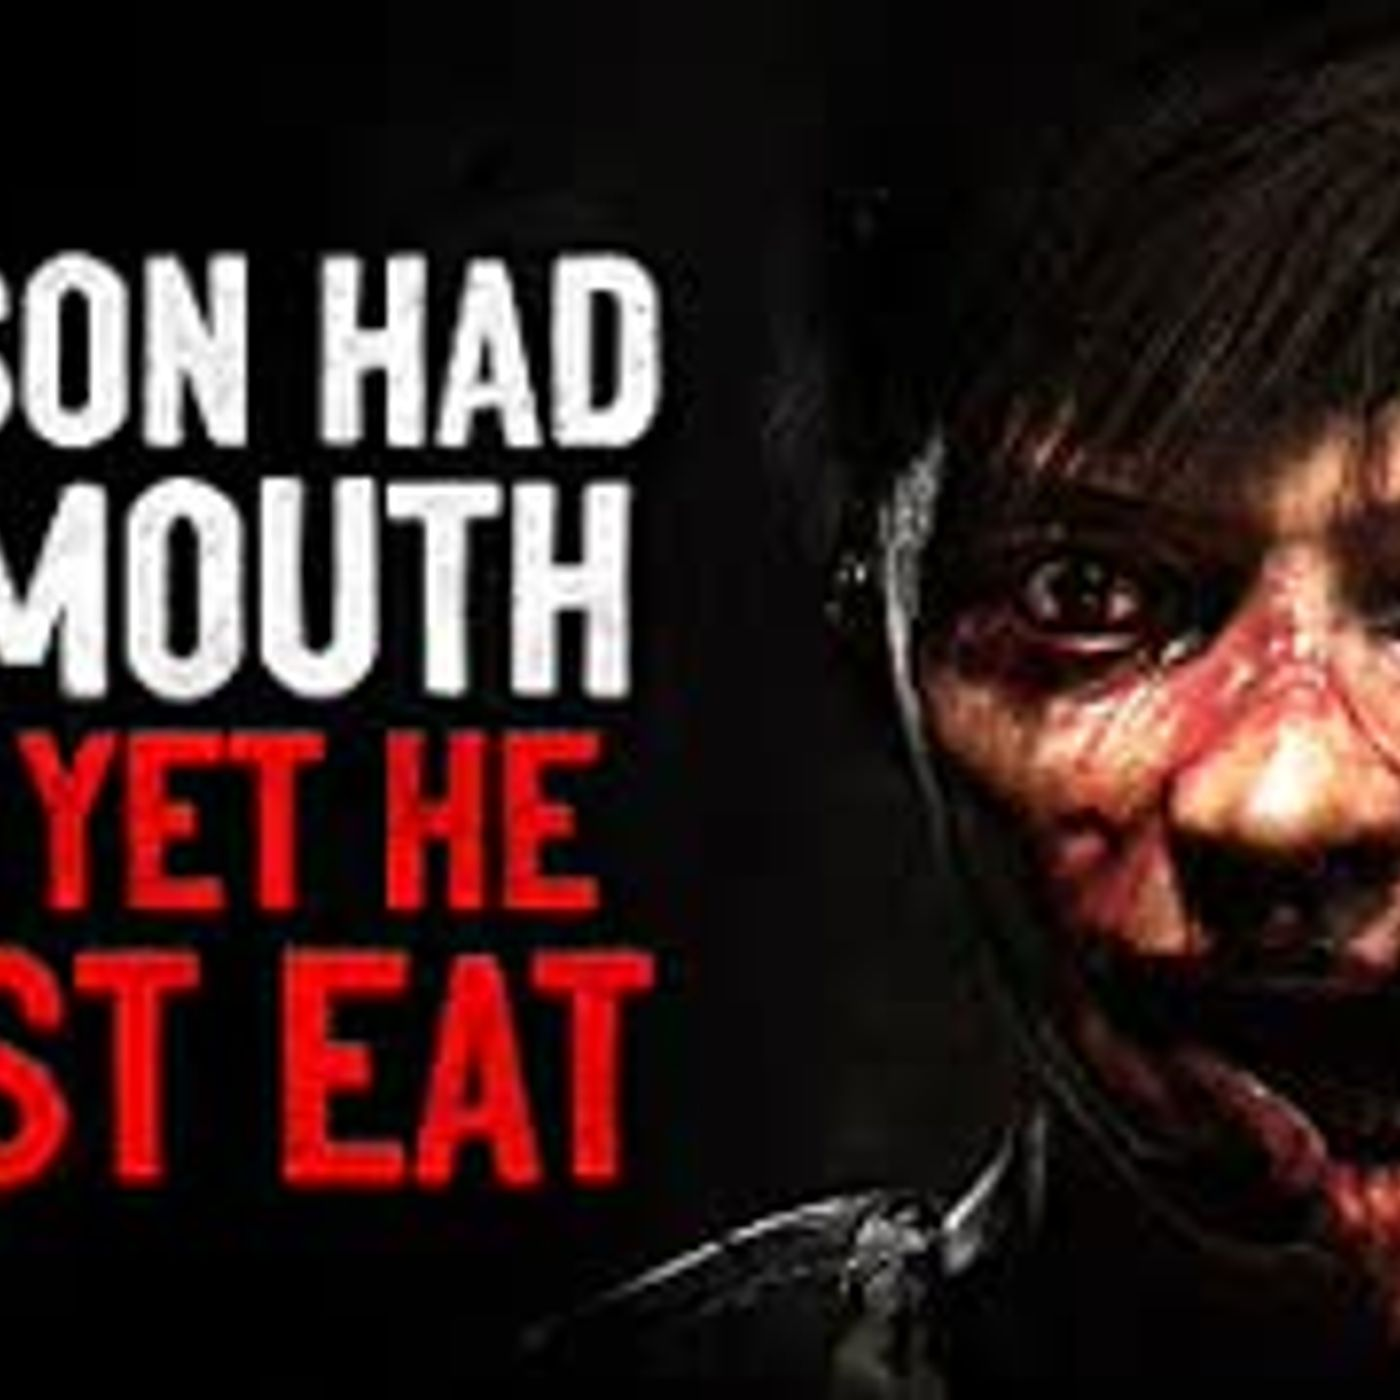 """My son has no mouth and yet he must eat"" Creepypasta"